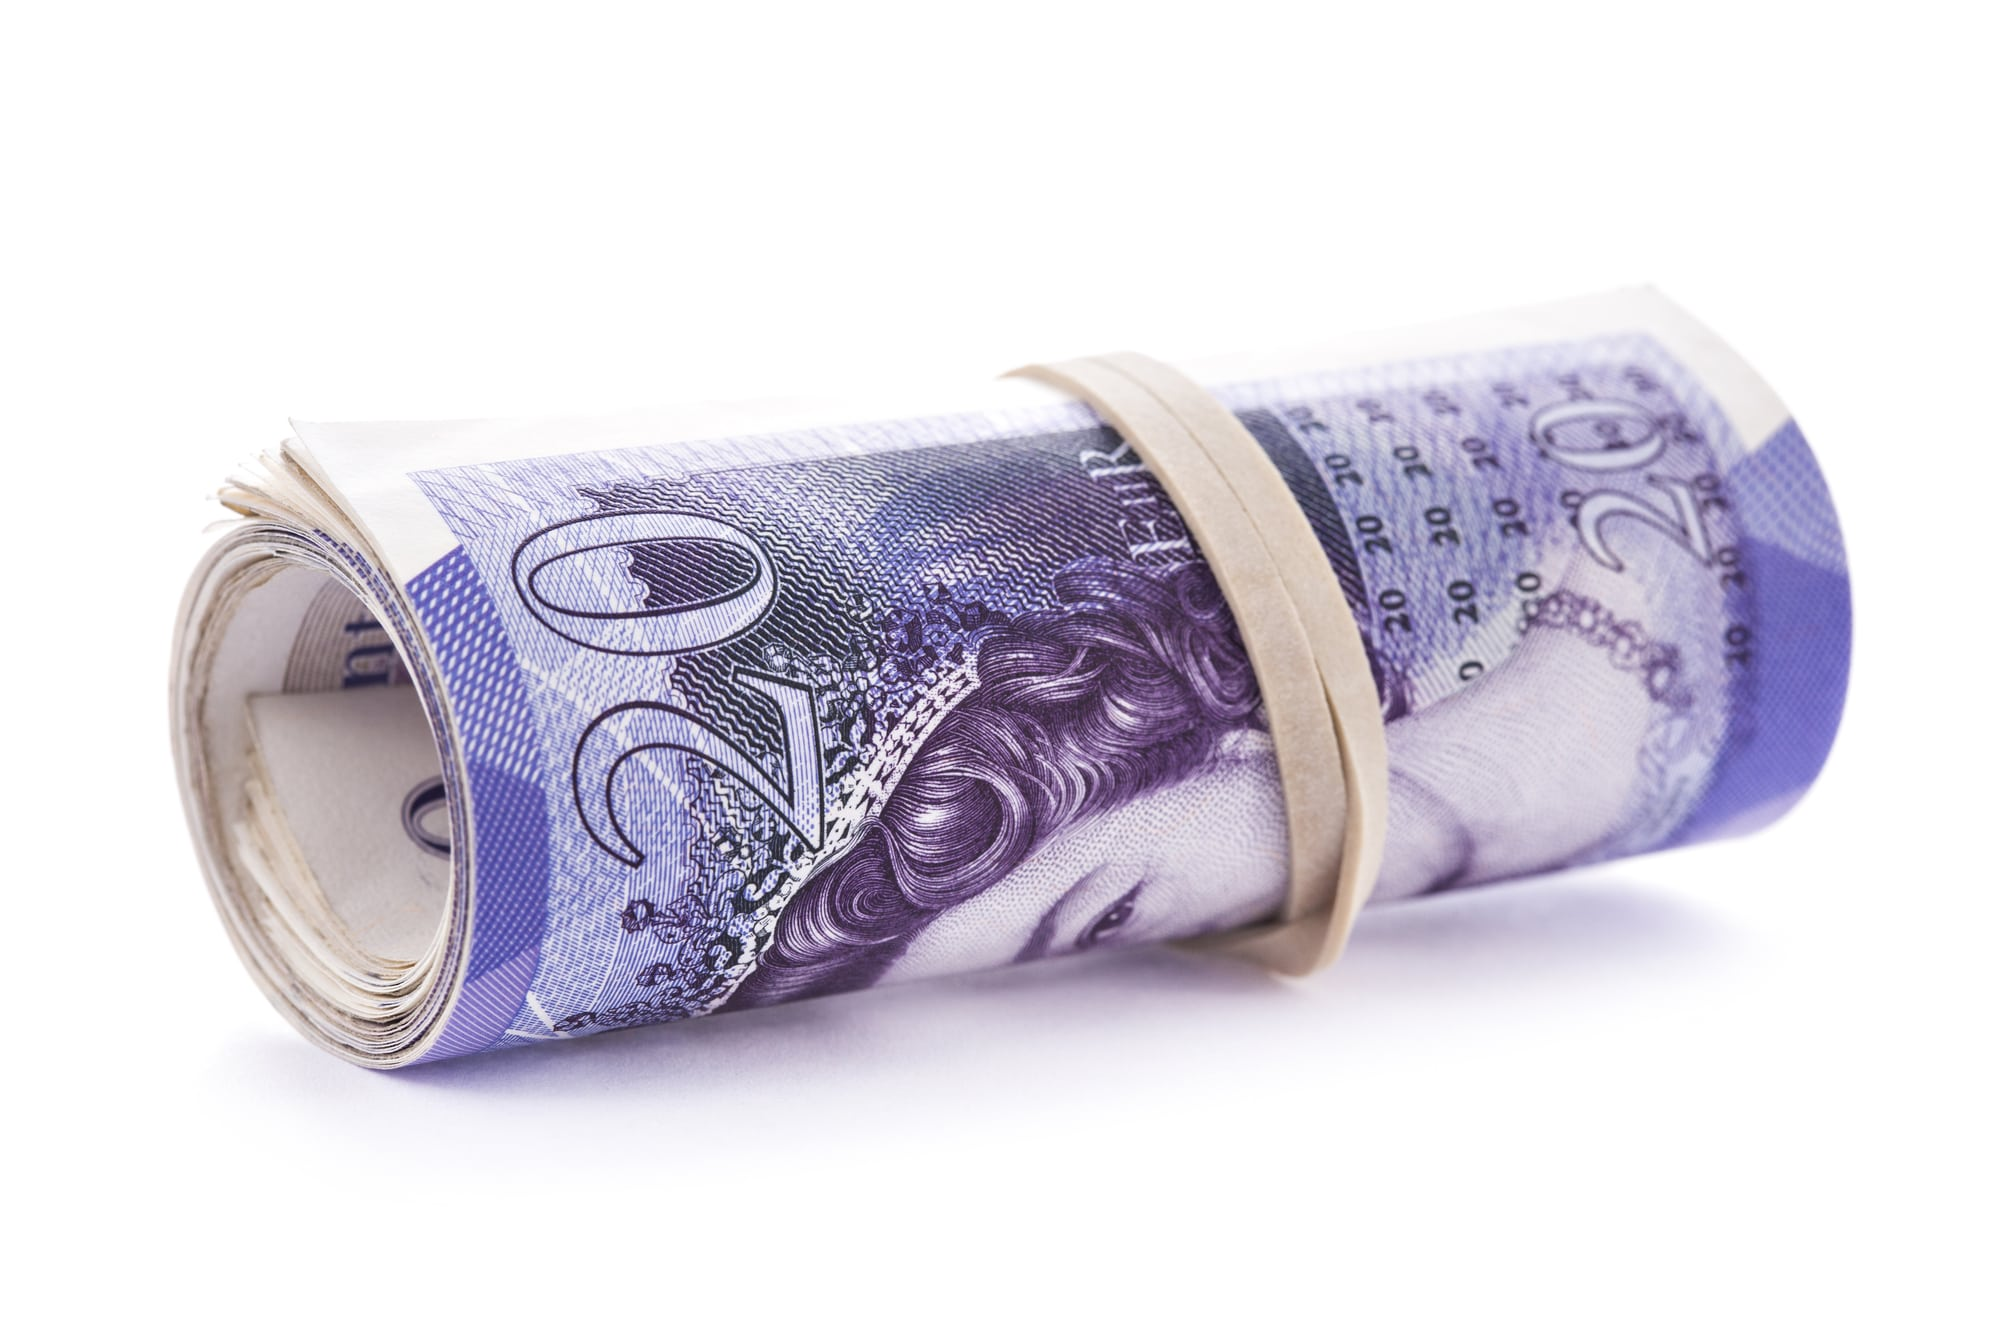 £200 in Free bets at these Bookmakers online